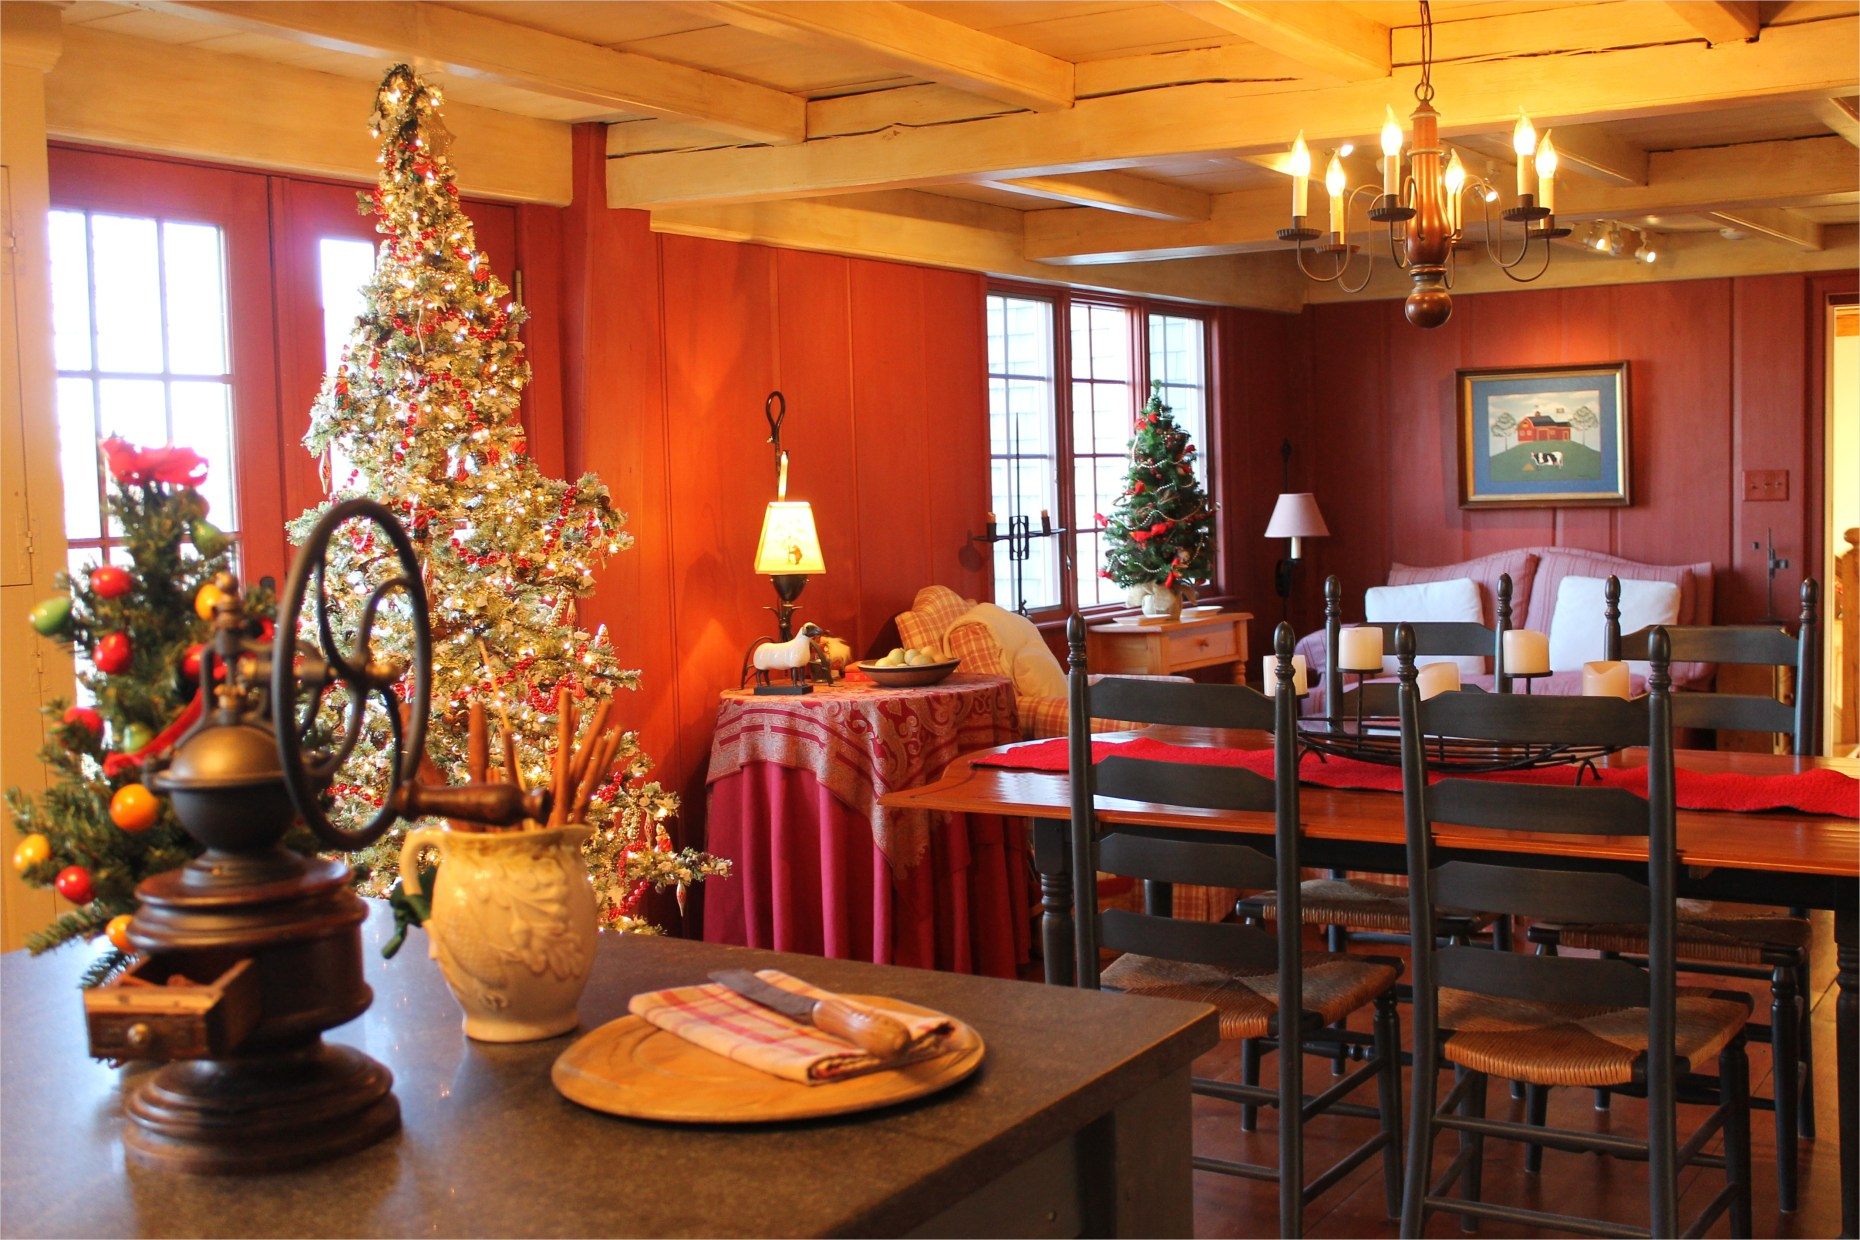 42 Awesome Kitchen Christmas Decorating Ideas 18 Our Christmas Kitchen is Filled with Sweet Smells 4